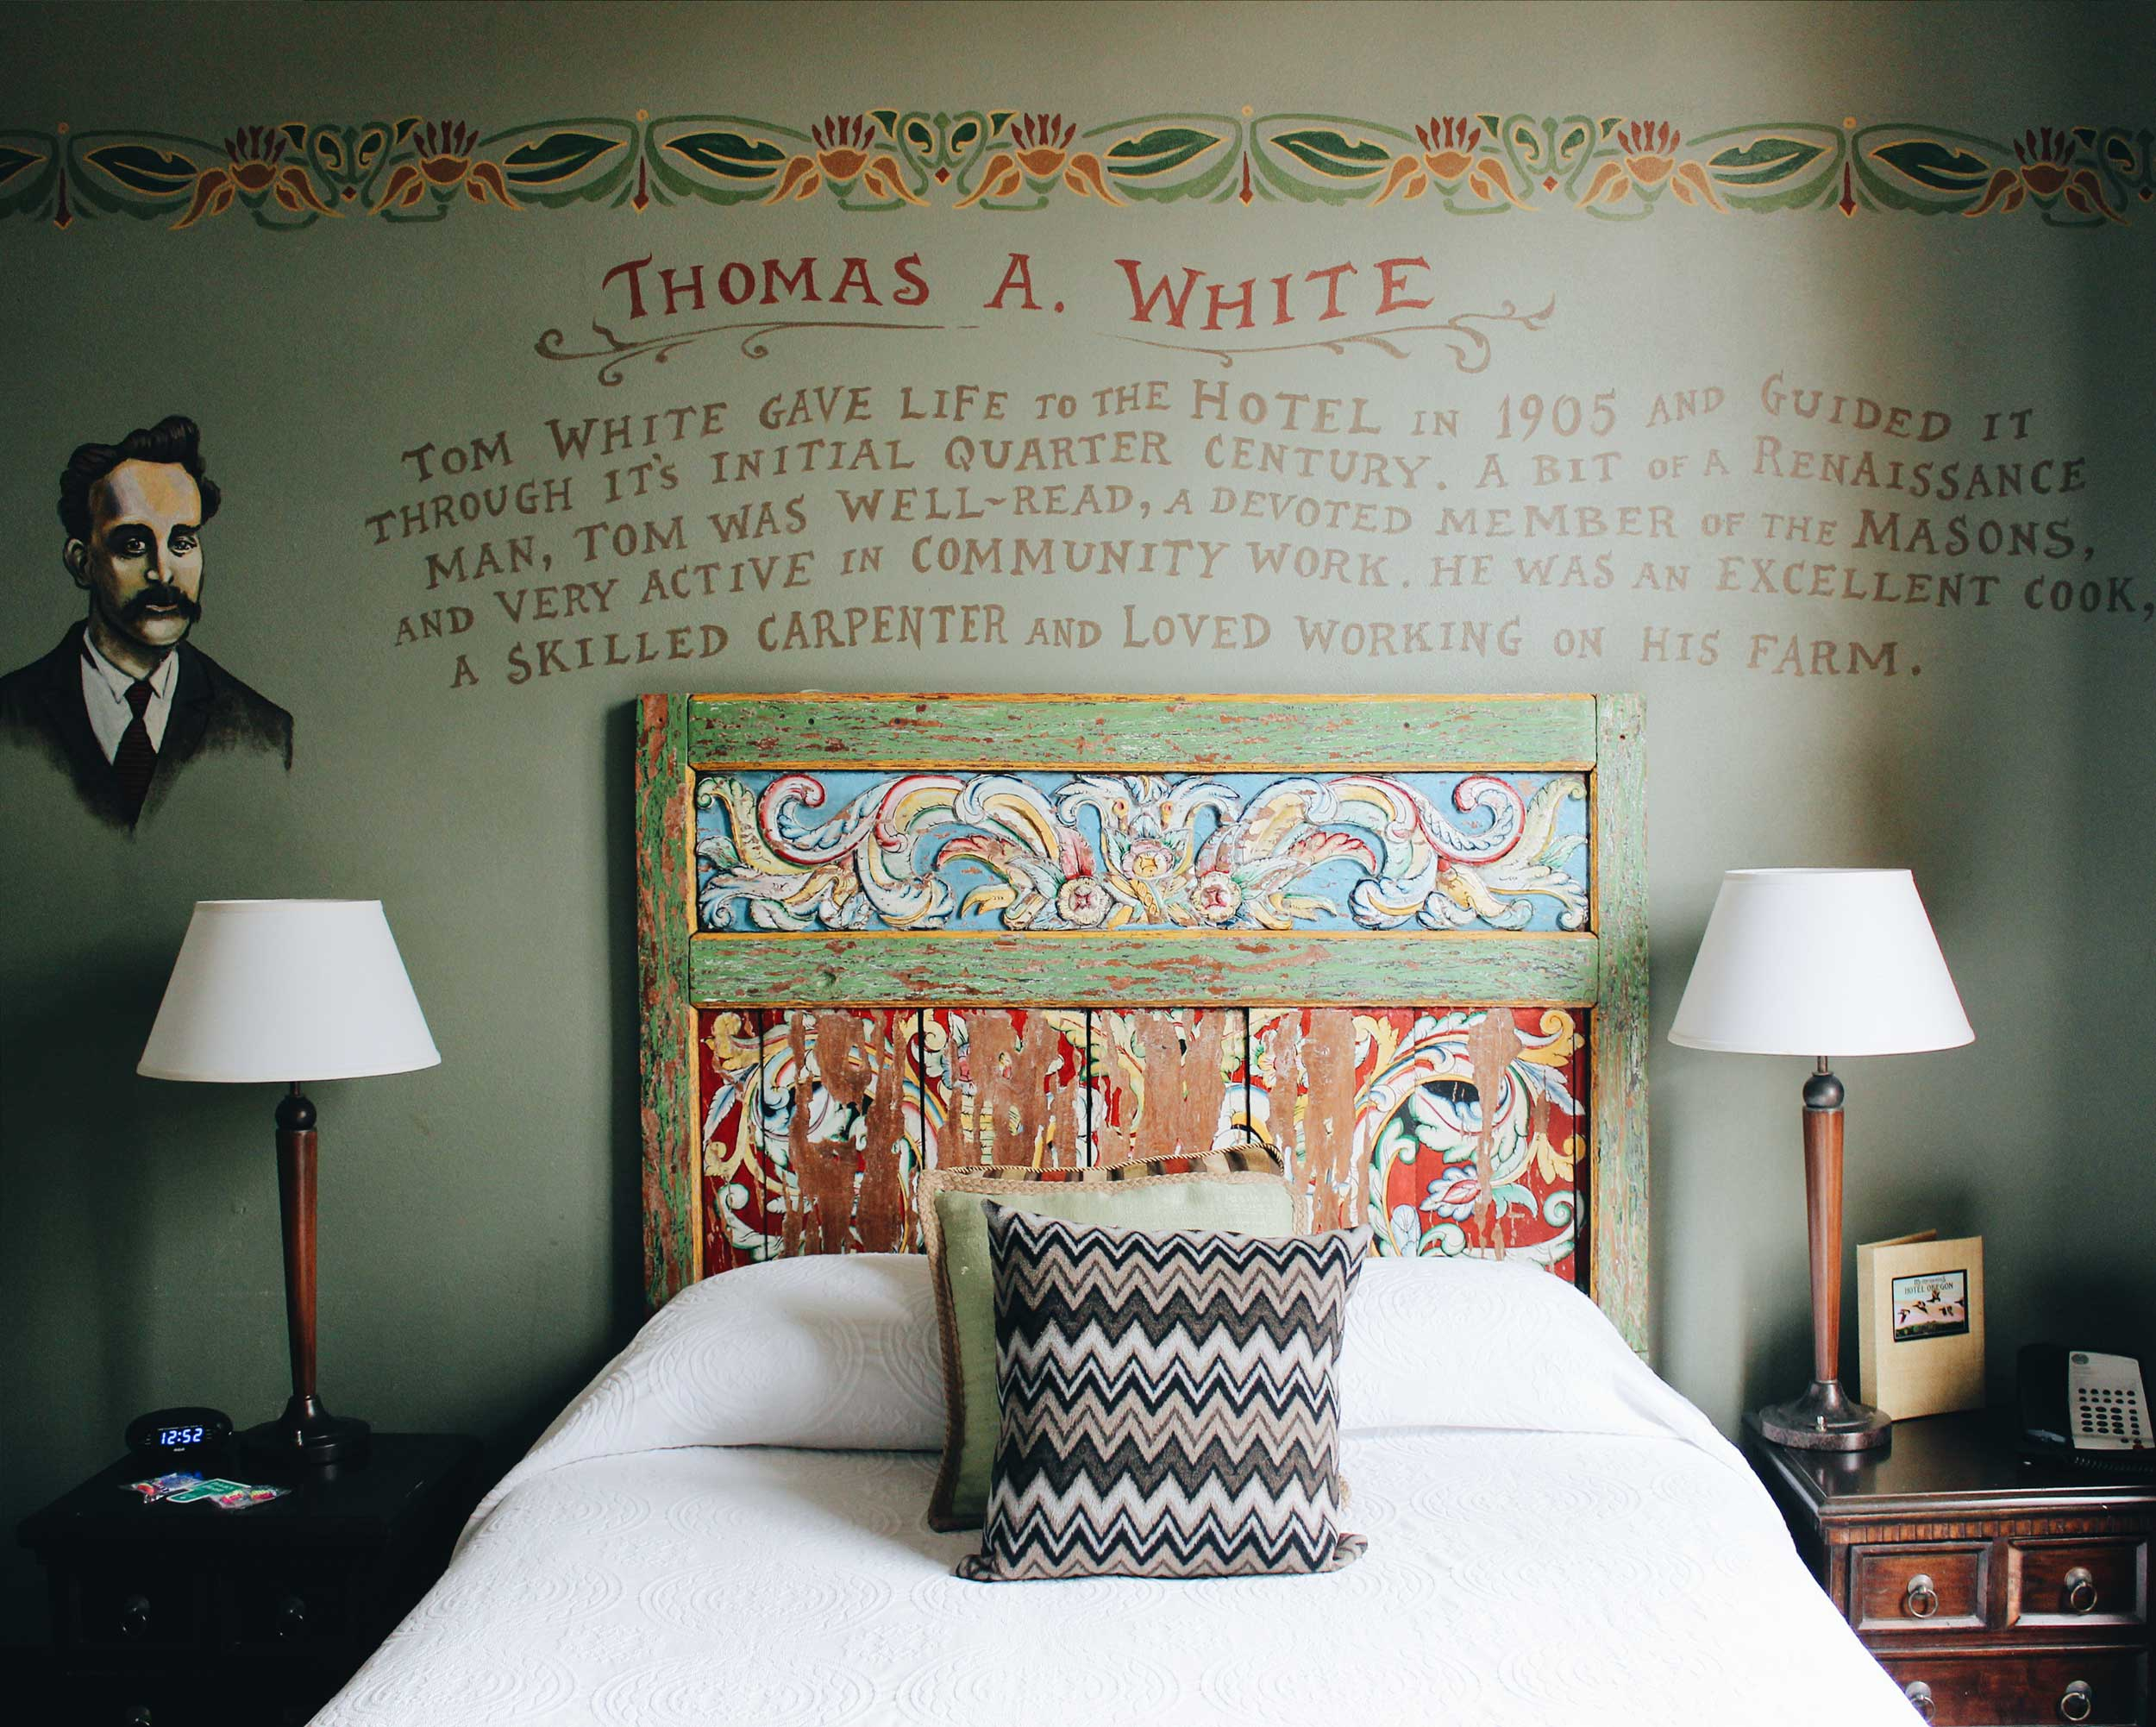 A single bed with an old, battered, painted wooden headboard flanked by side tables with lamps on them at Hotel Oregon